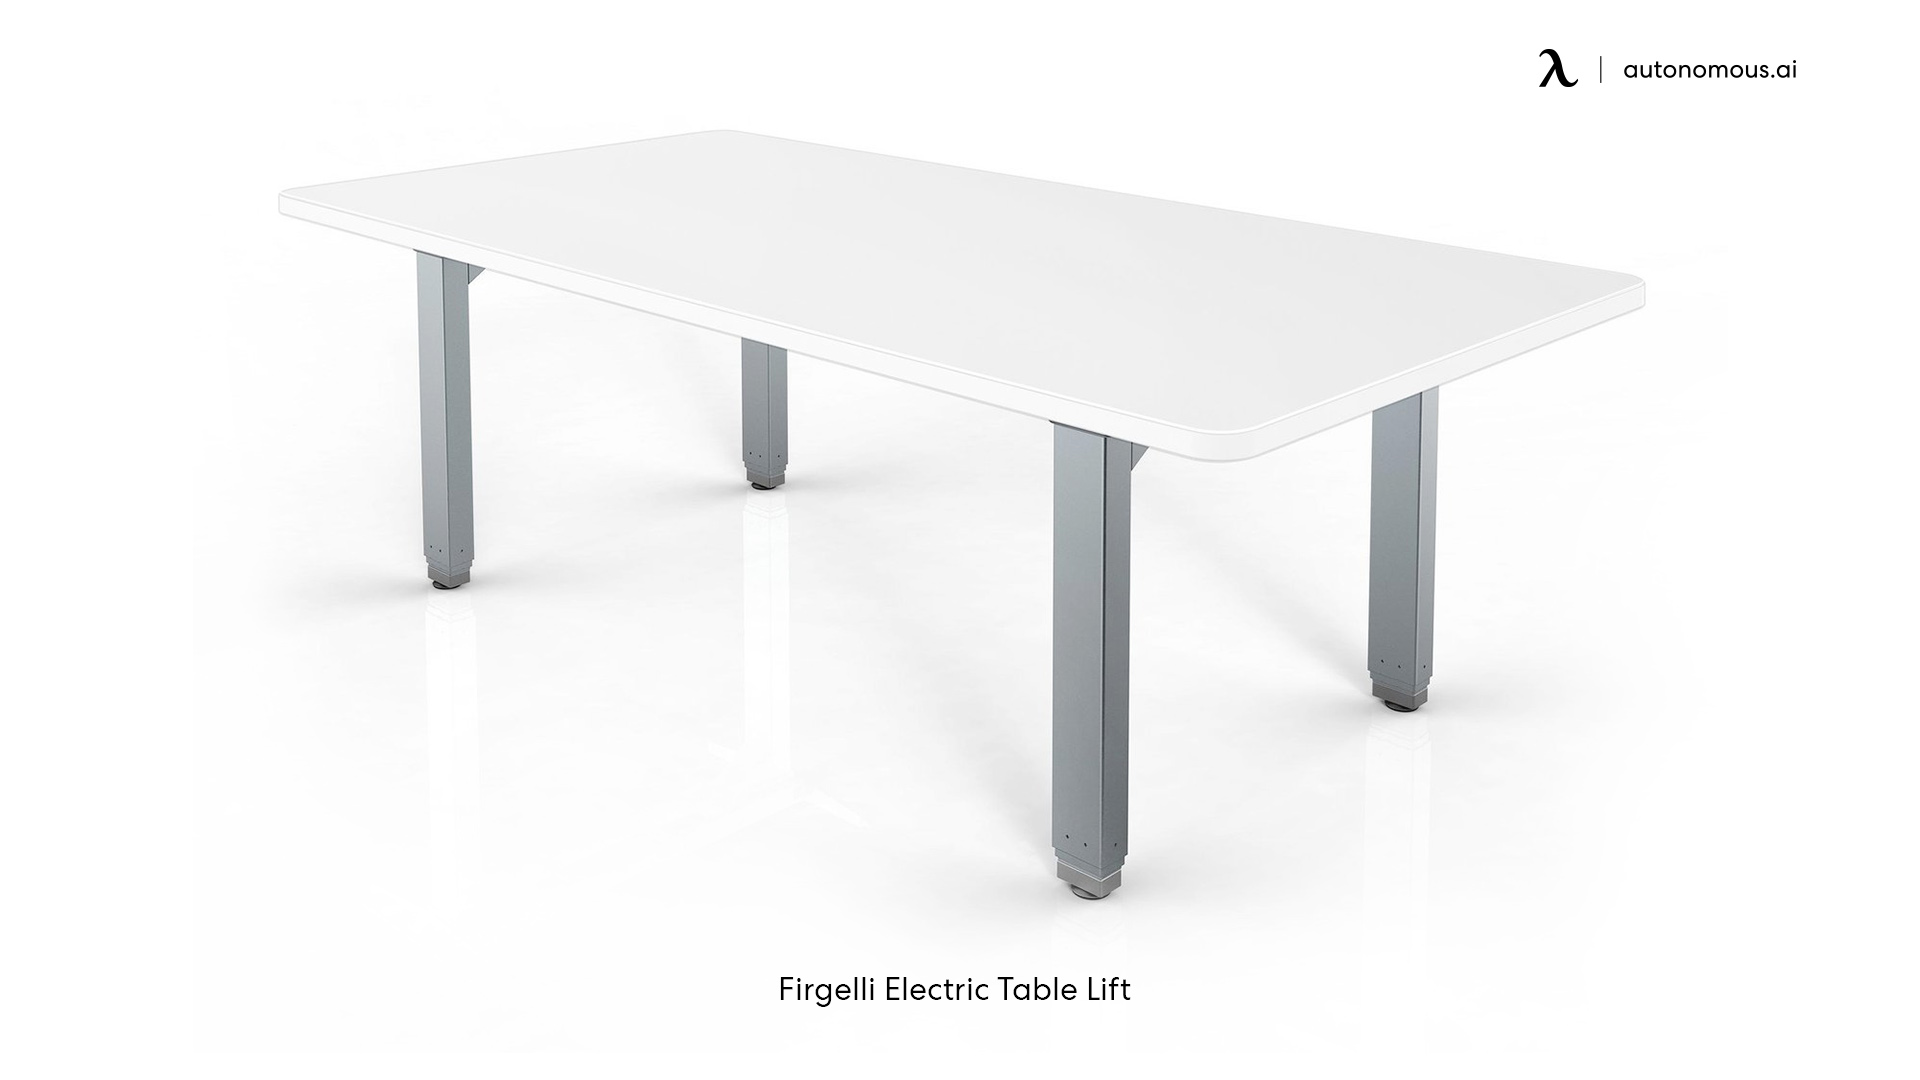 Firgelli Electric Table Lift